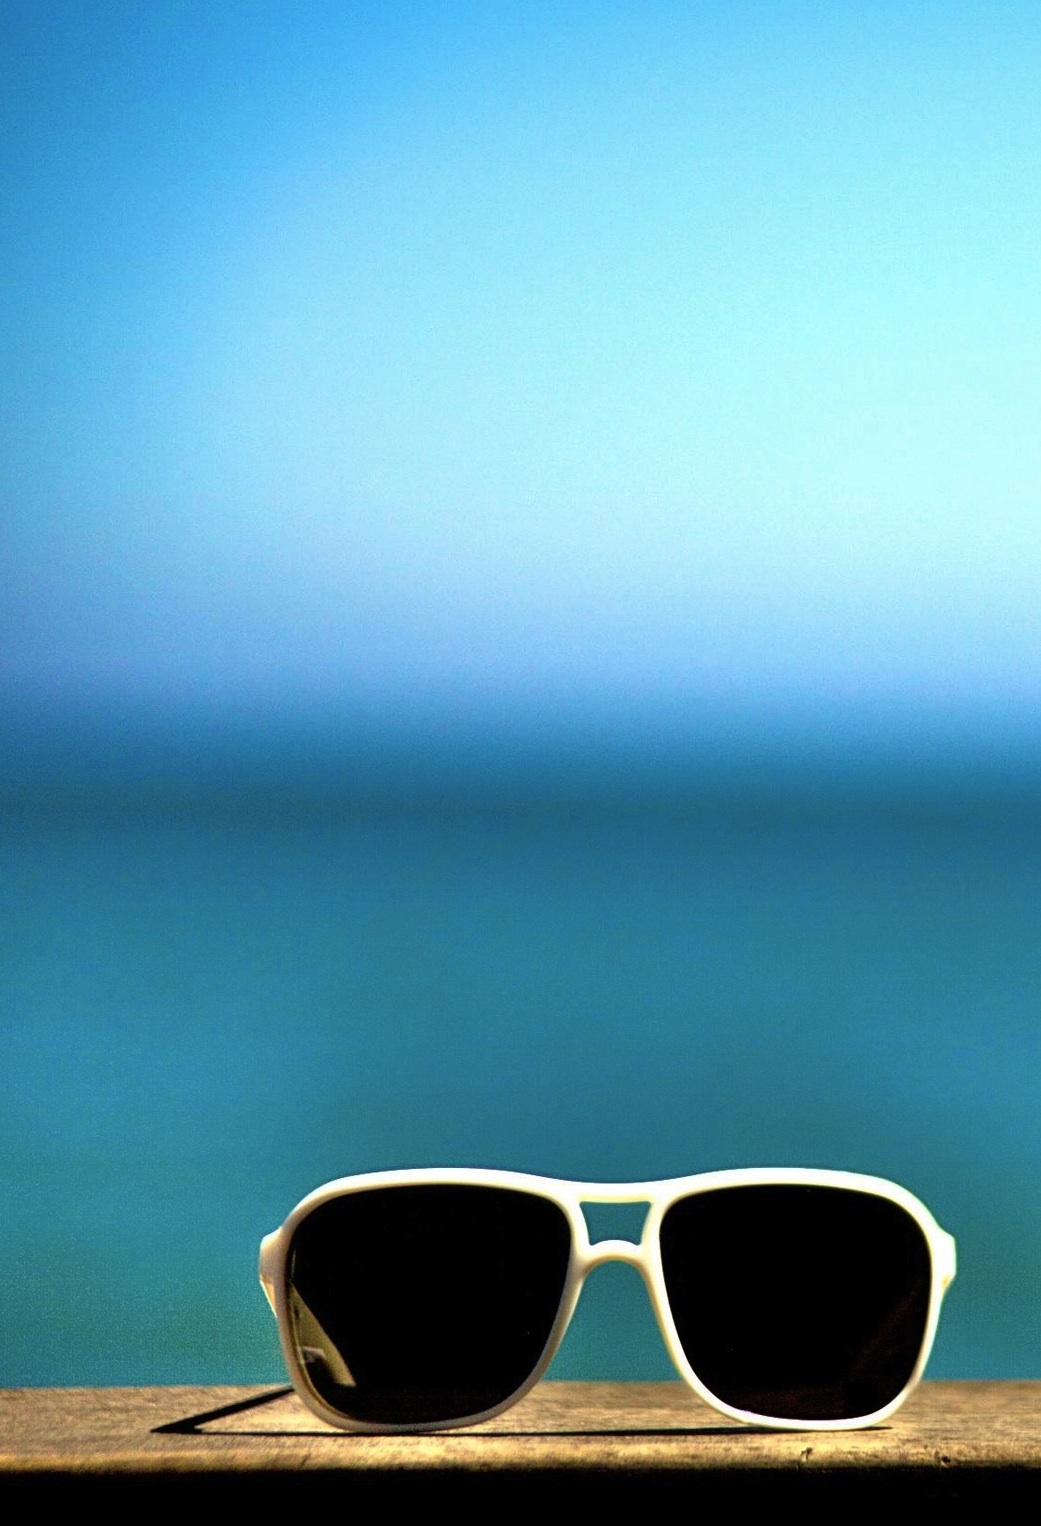 Live Beach Wallpaper For Iphone Download Ios 7 Parallax Wallpapers